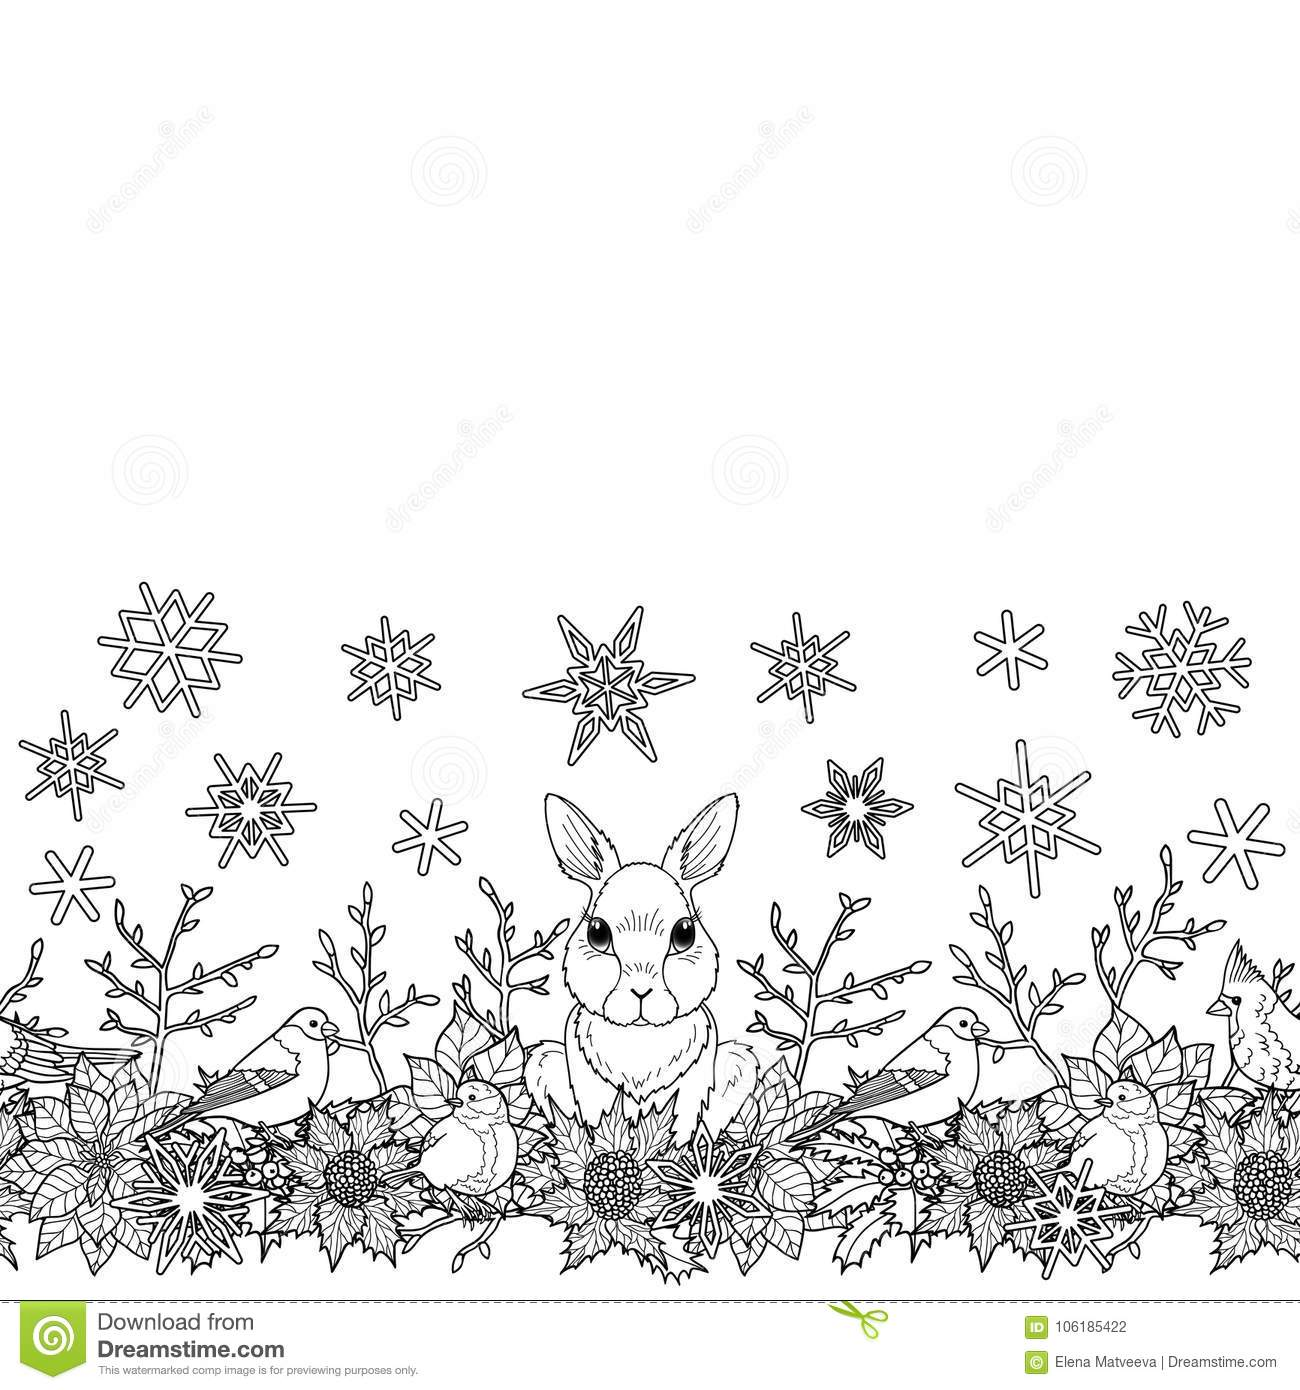 b5fb42b4168 Rabbit and bird seamless horizon border. Winter square new year black and  white wallpaper for greeting cards